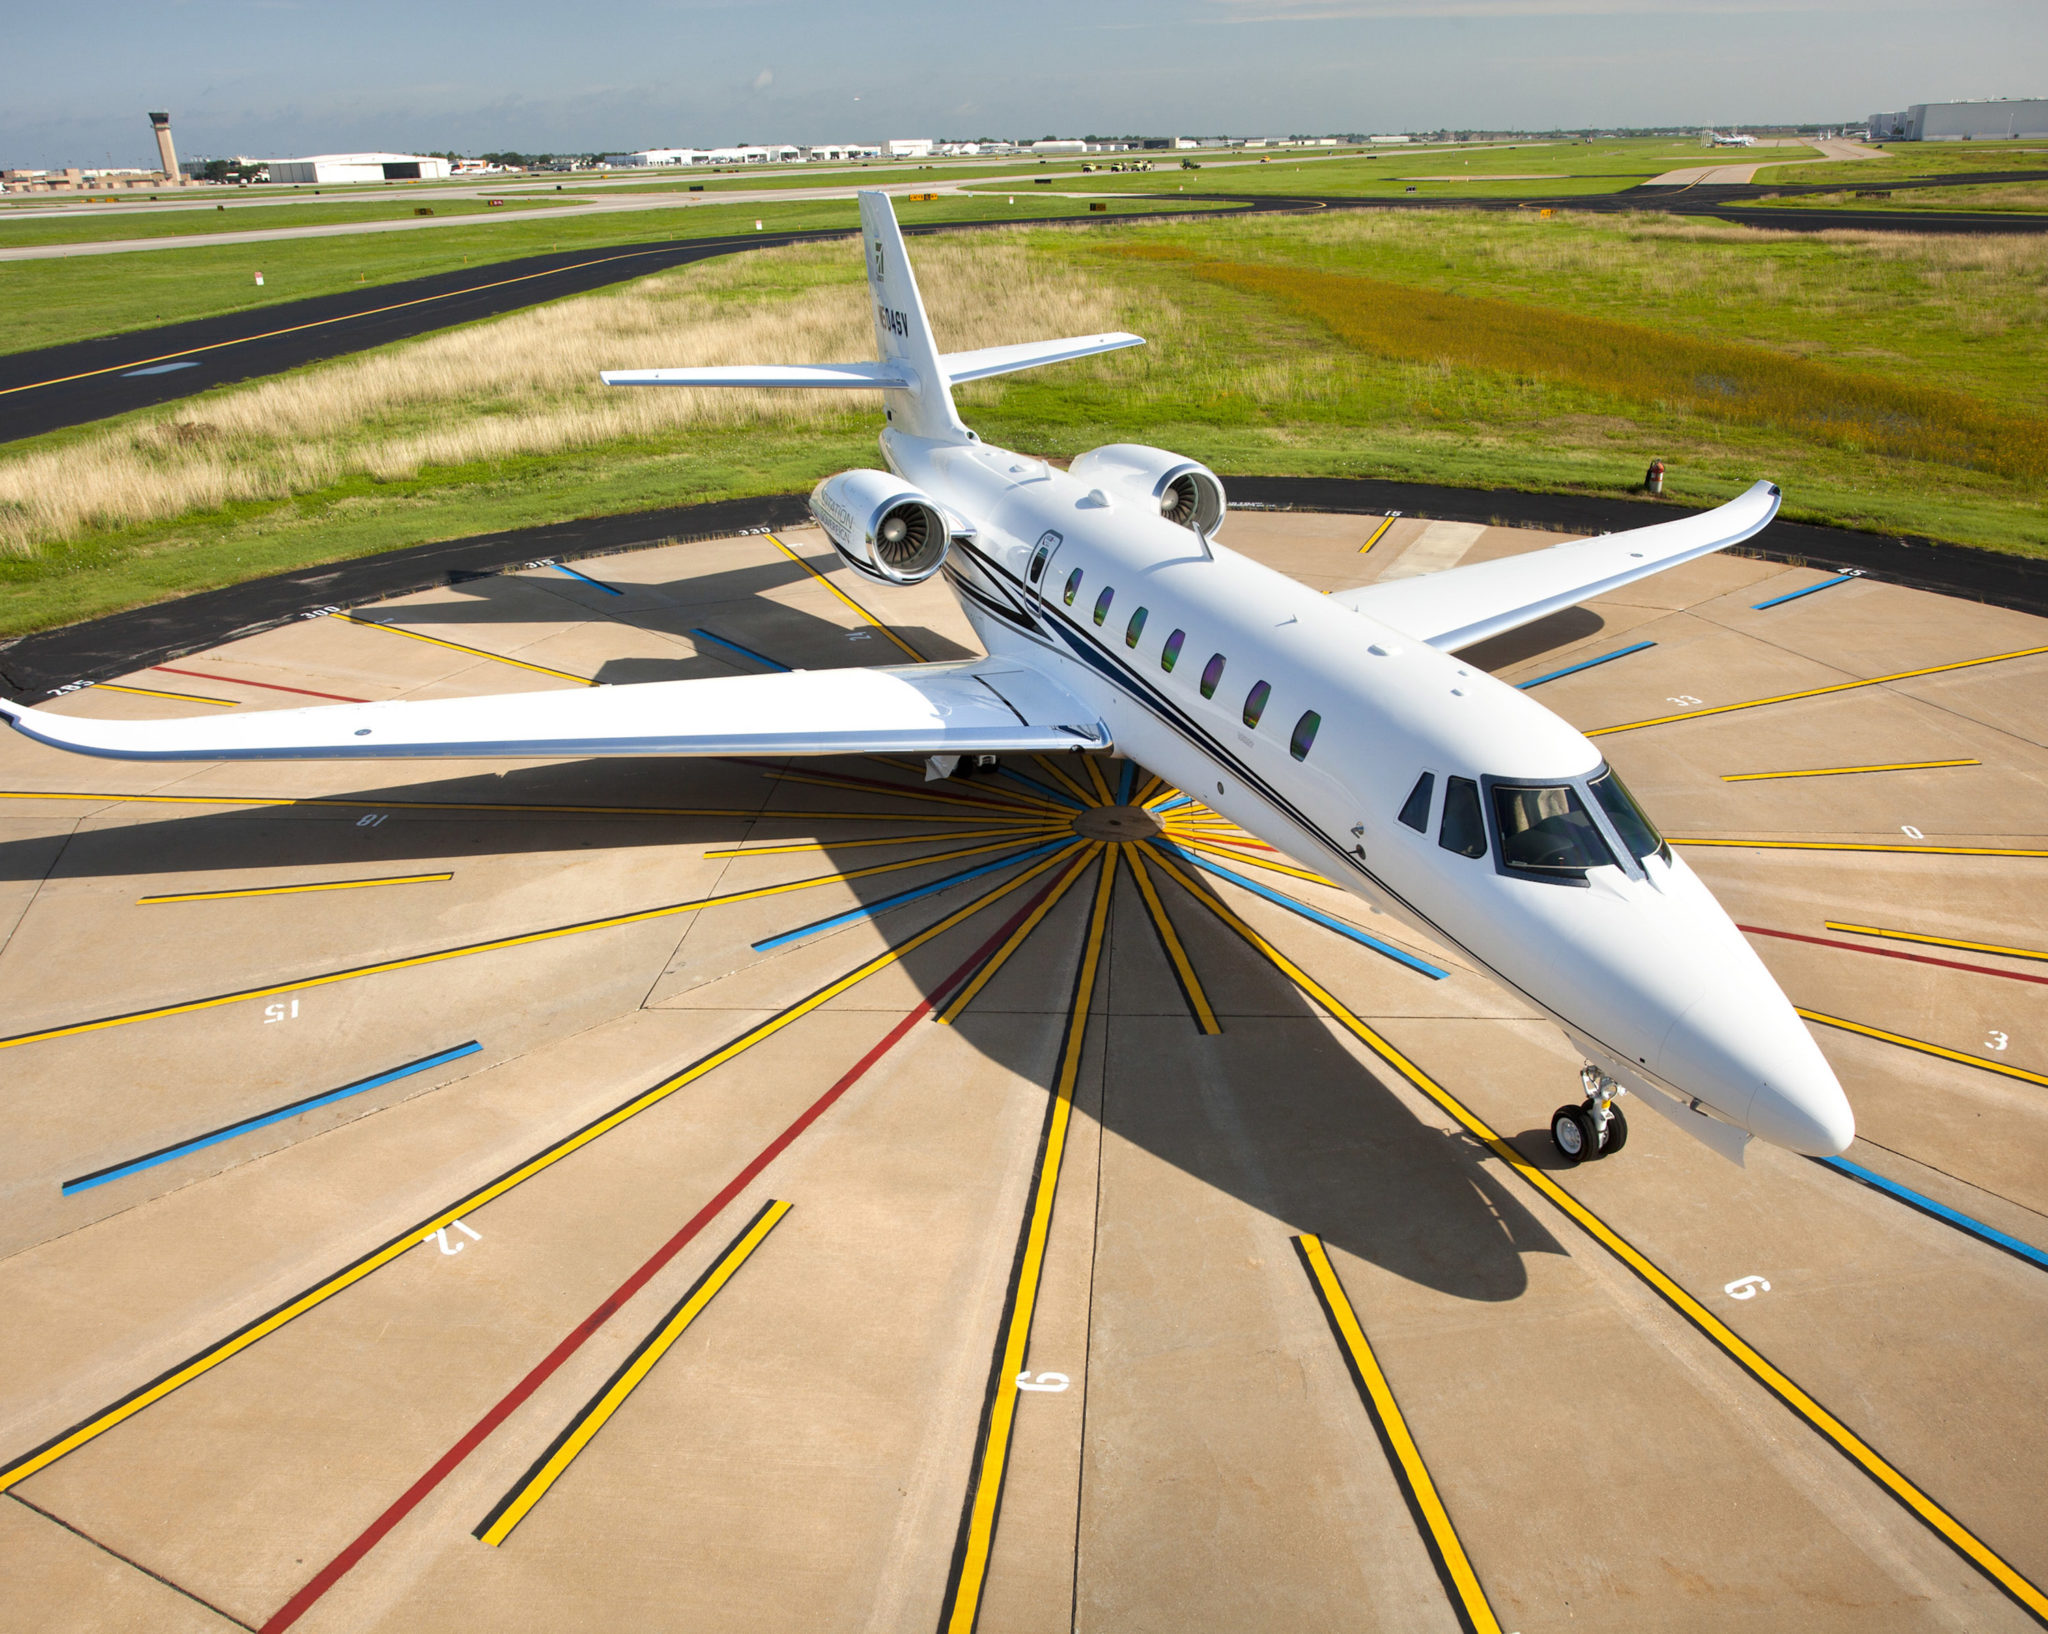 FAA Validates Cessna Citation X Speed As Fastest Civilian Cessna